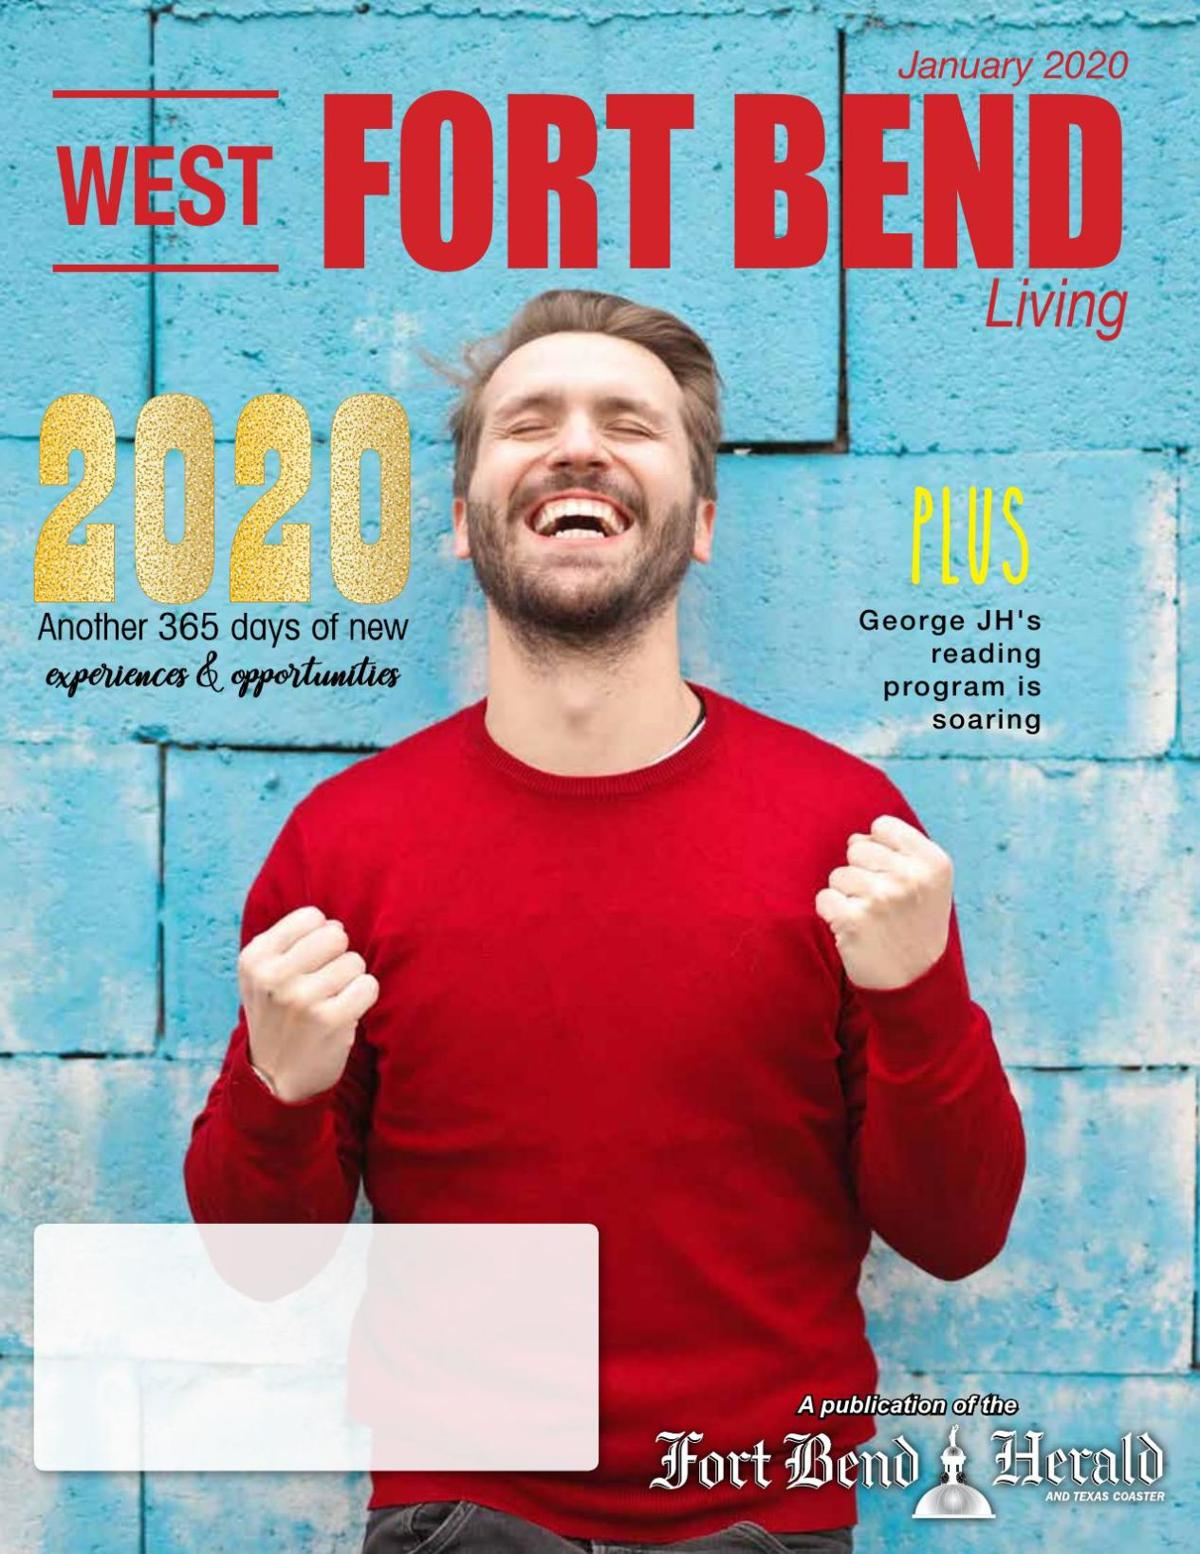 West Fort Bend Living: January 2020